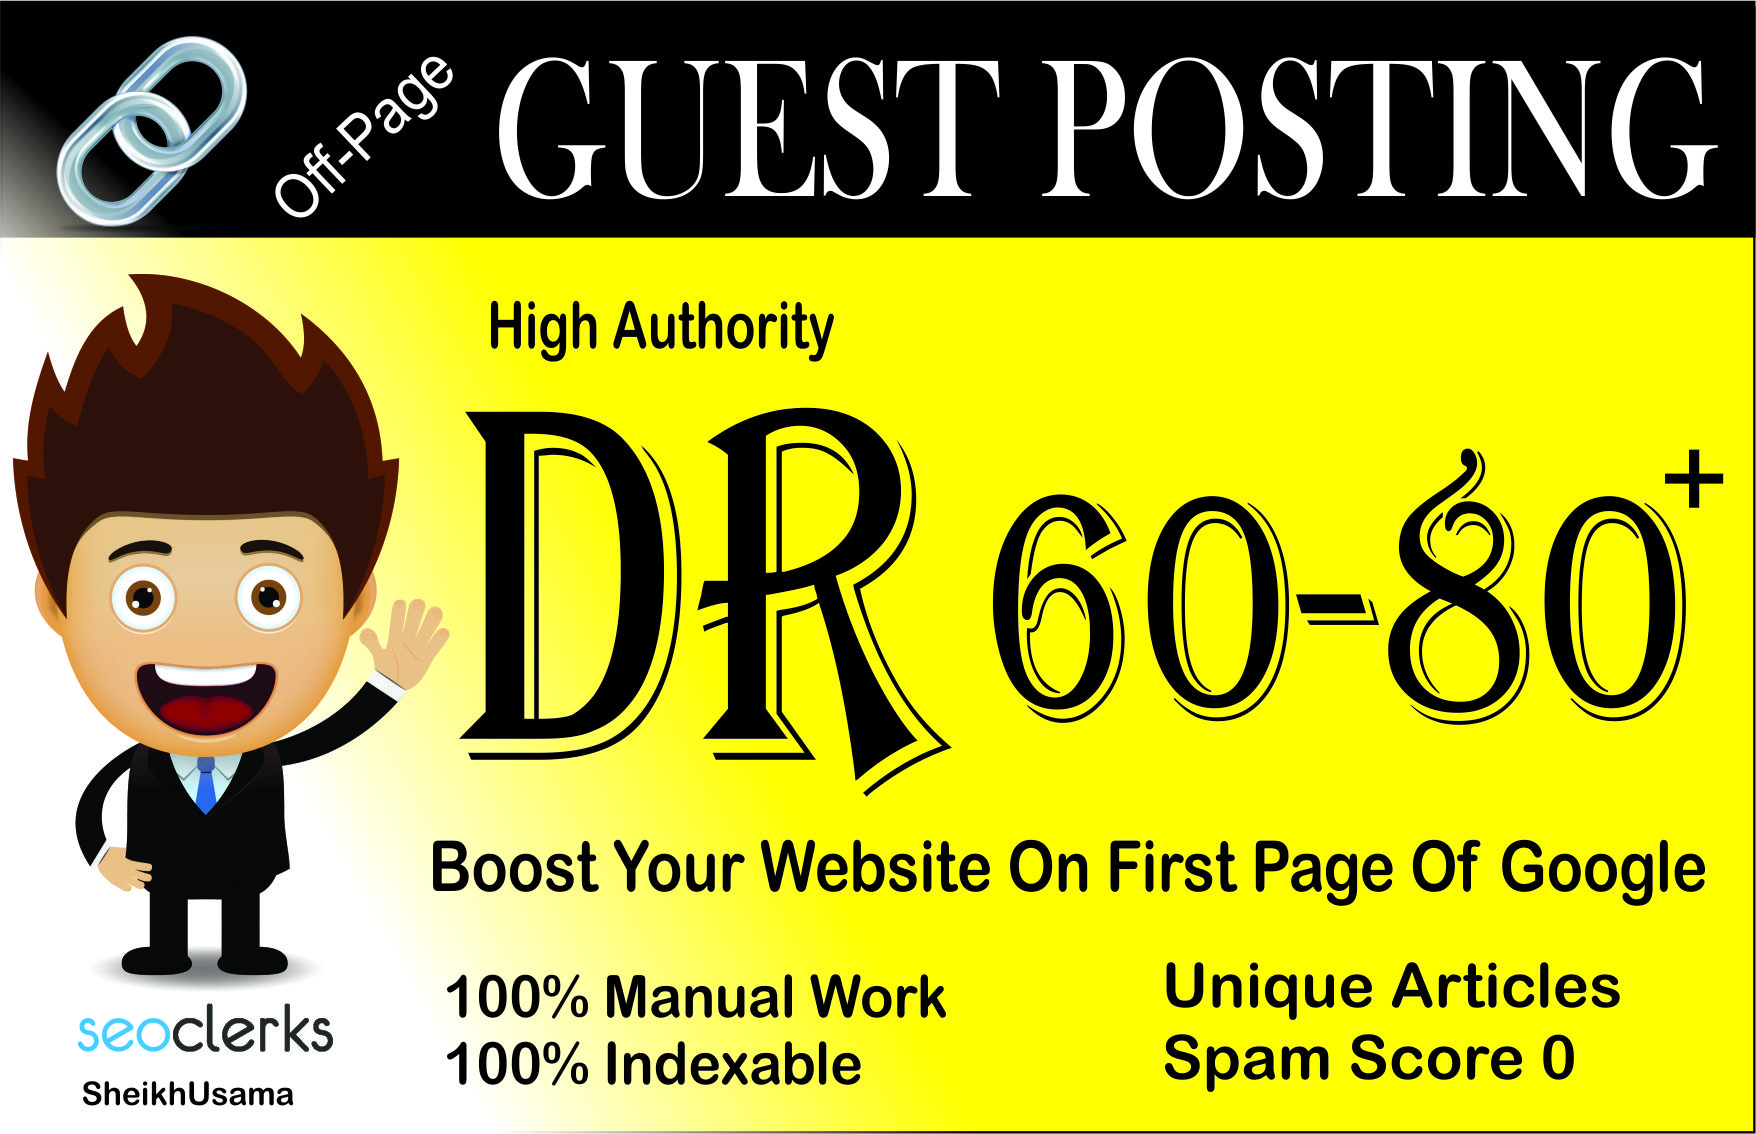 Guest Posting Using (2) High DR 60 to 80 Permanent PBN Backlinks